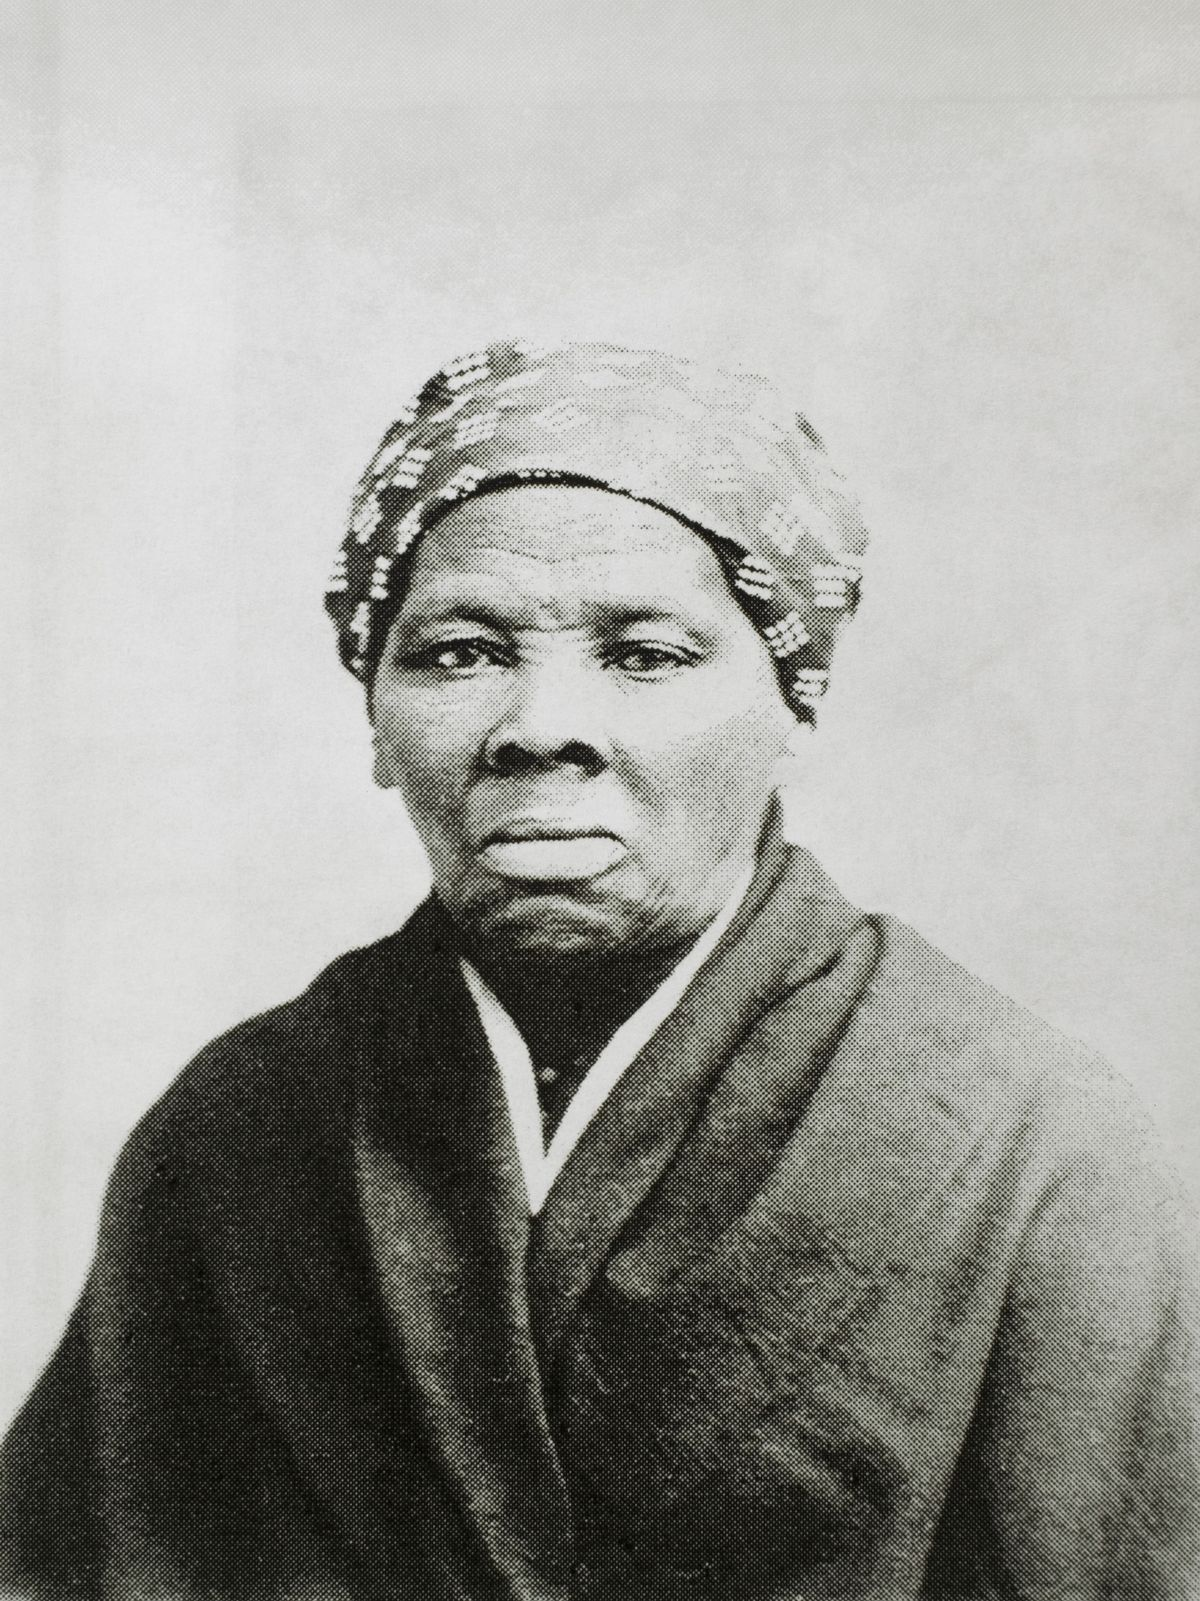 Tubman was unflinching in her commitment to liberation and would use the power of her pistol if necessary